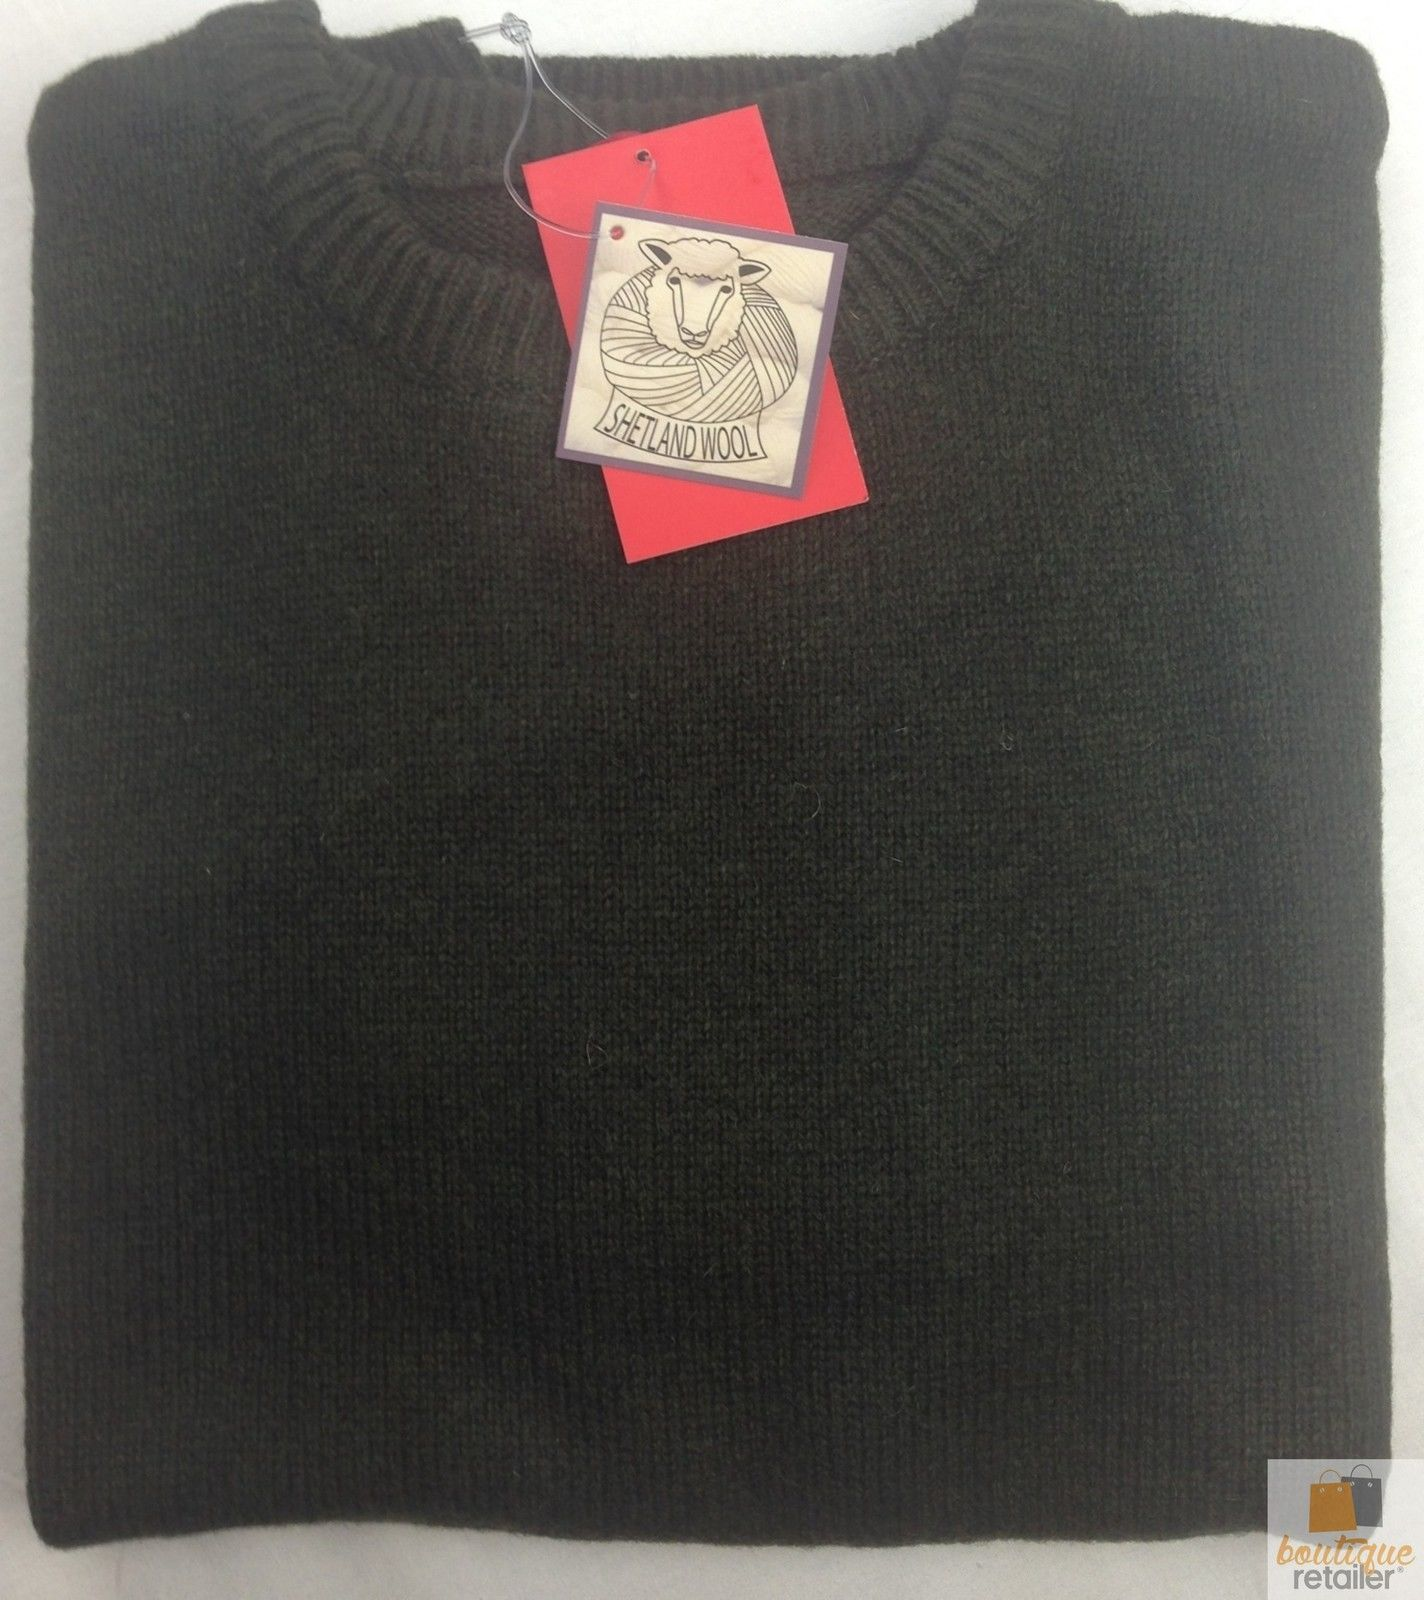 100-SHETLAND-WOOL-CREW-Round-Neck-Knit-JUMPER-Pullover-Mens-Sweater-Knitted-New thumbnail 92